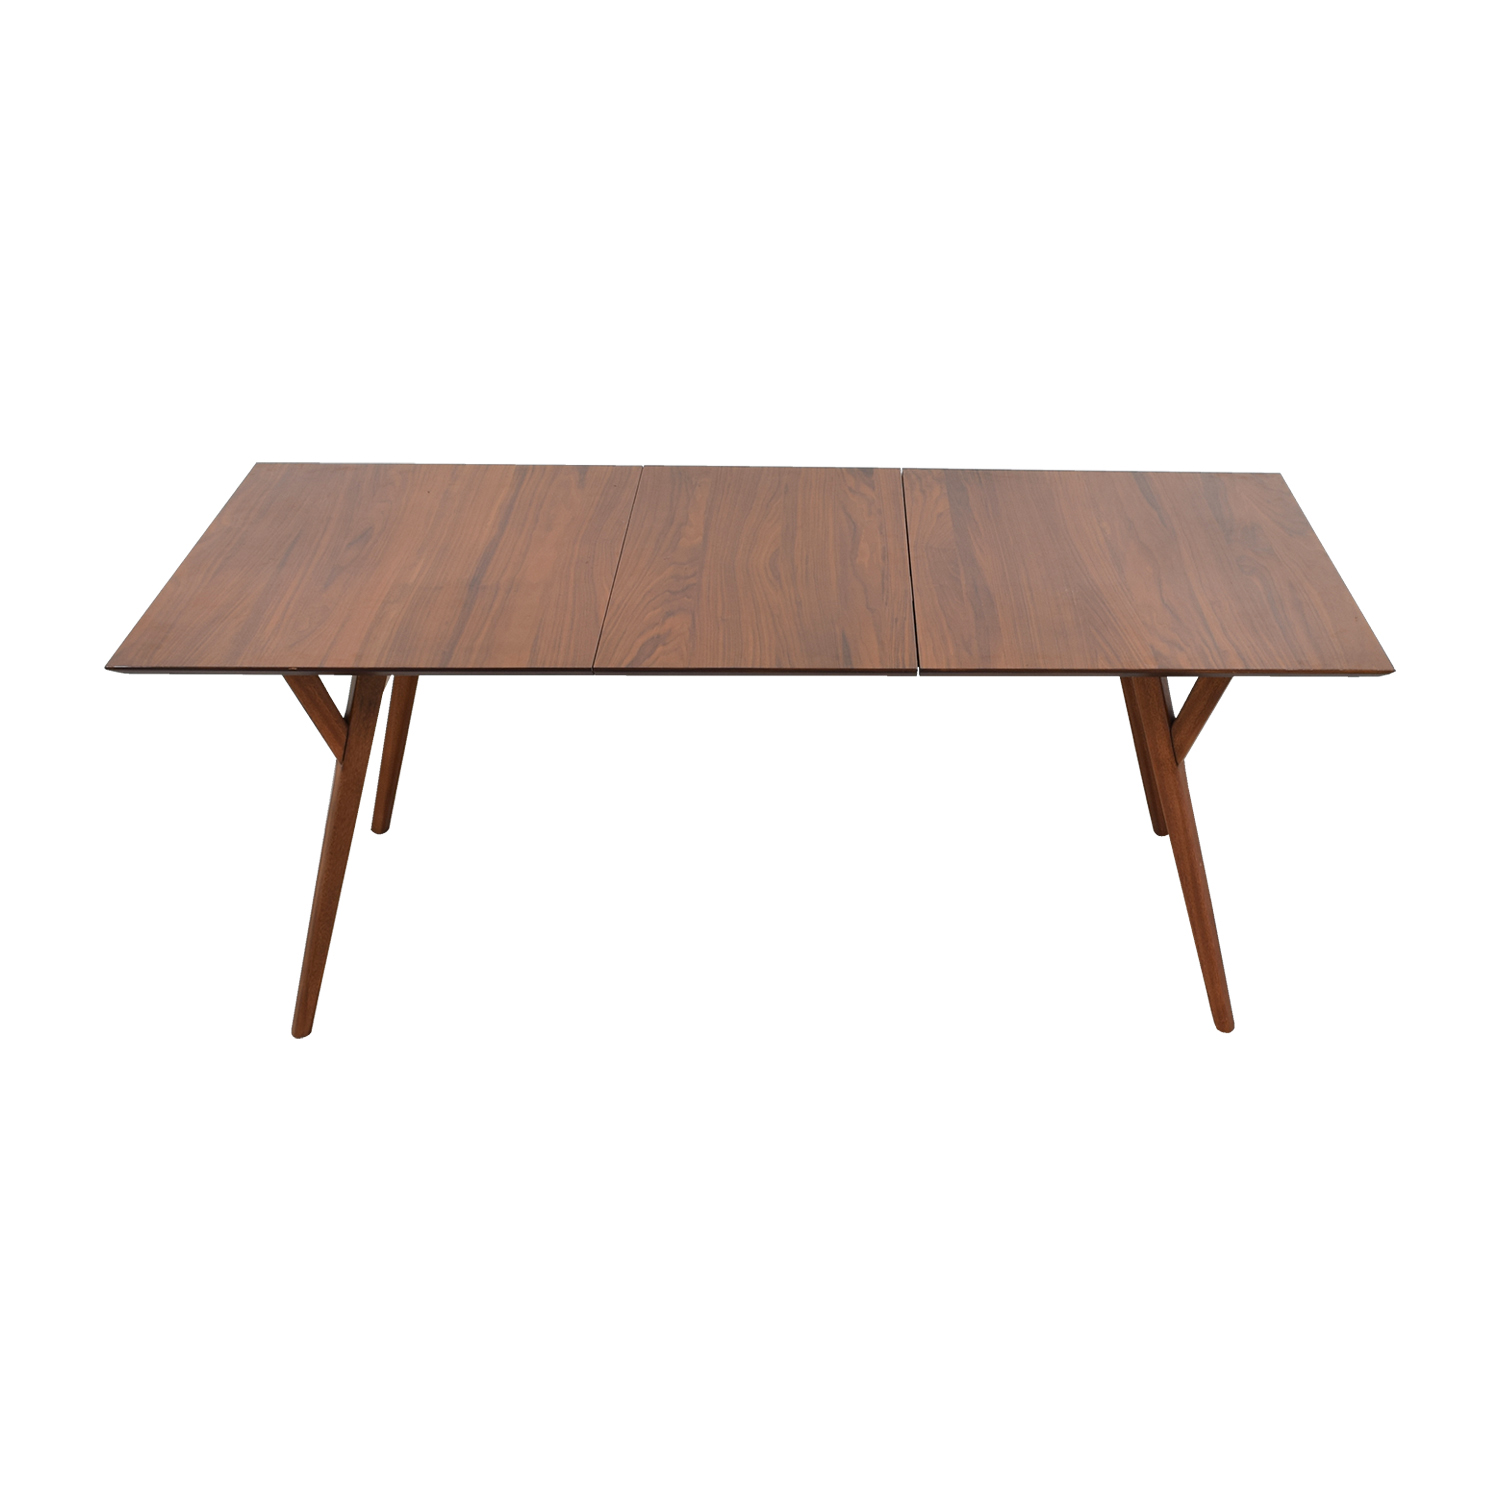 West elm west elm mid century walnut expandable dining table cherry wood